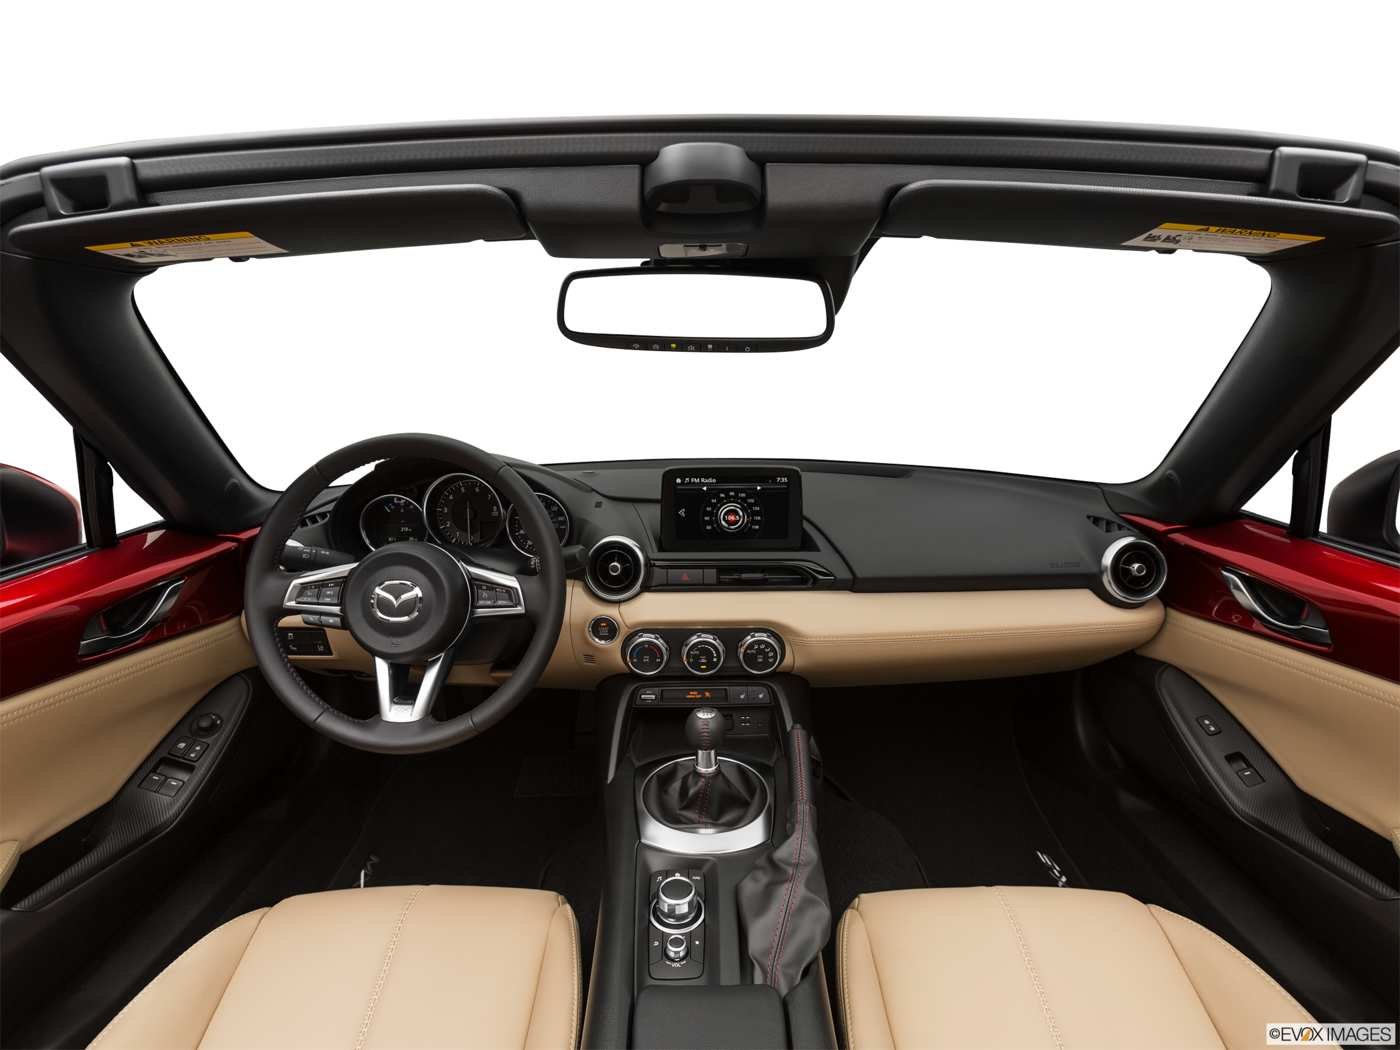 [Imagen: interior-center-view.jpg]